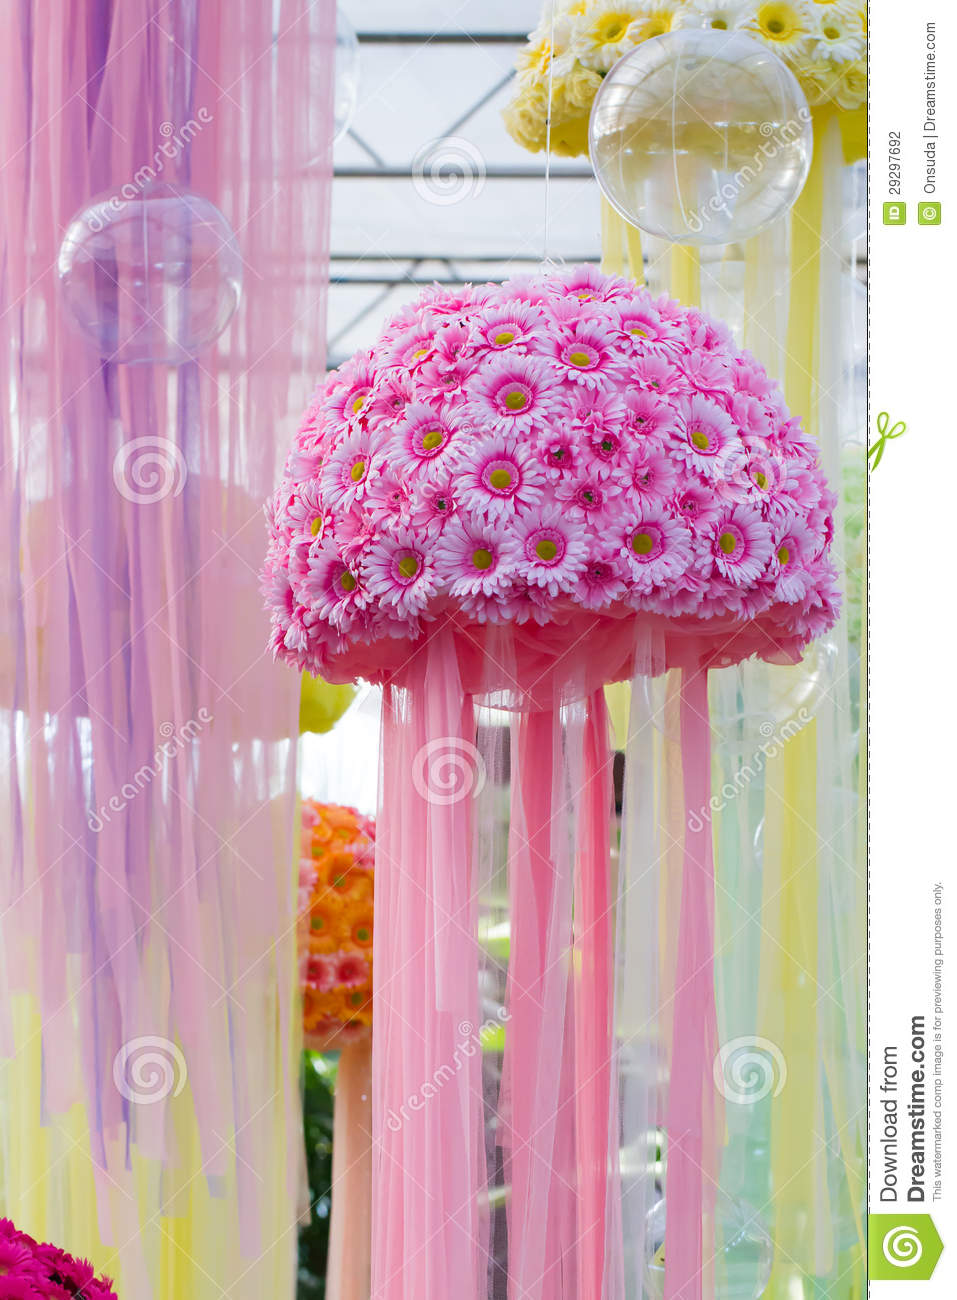 Pink flowers bouquet stock photo. Image of colorful, flora - 29297692